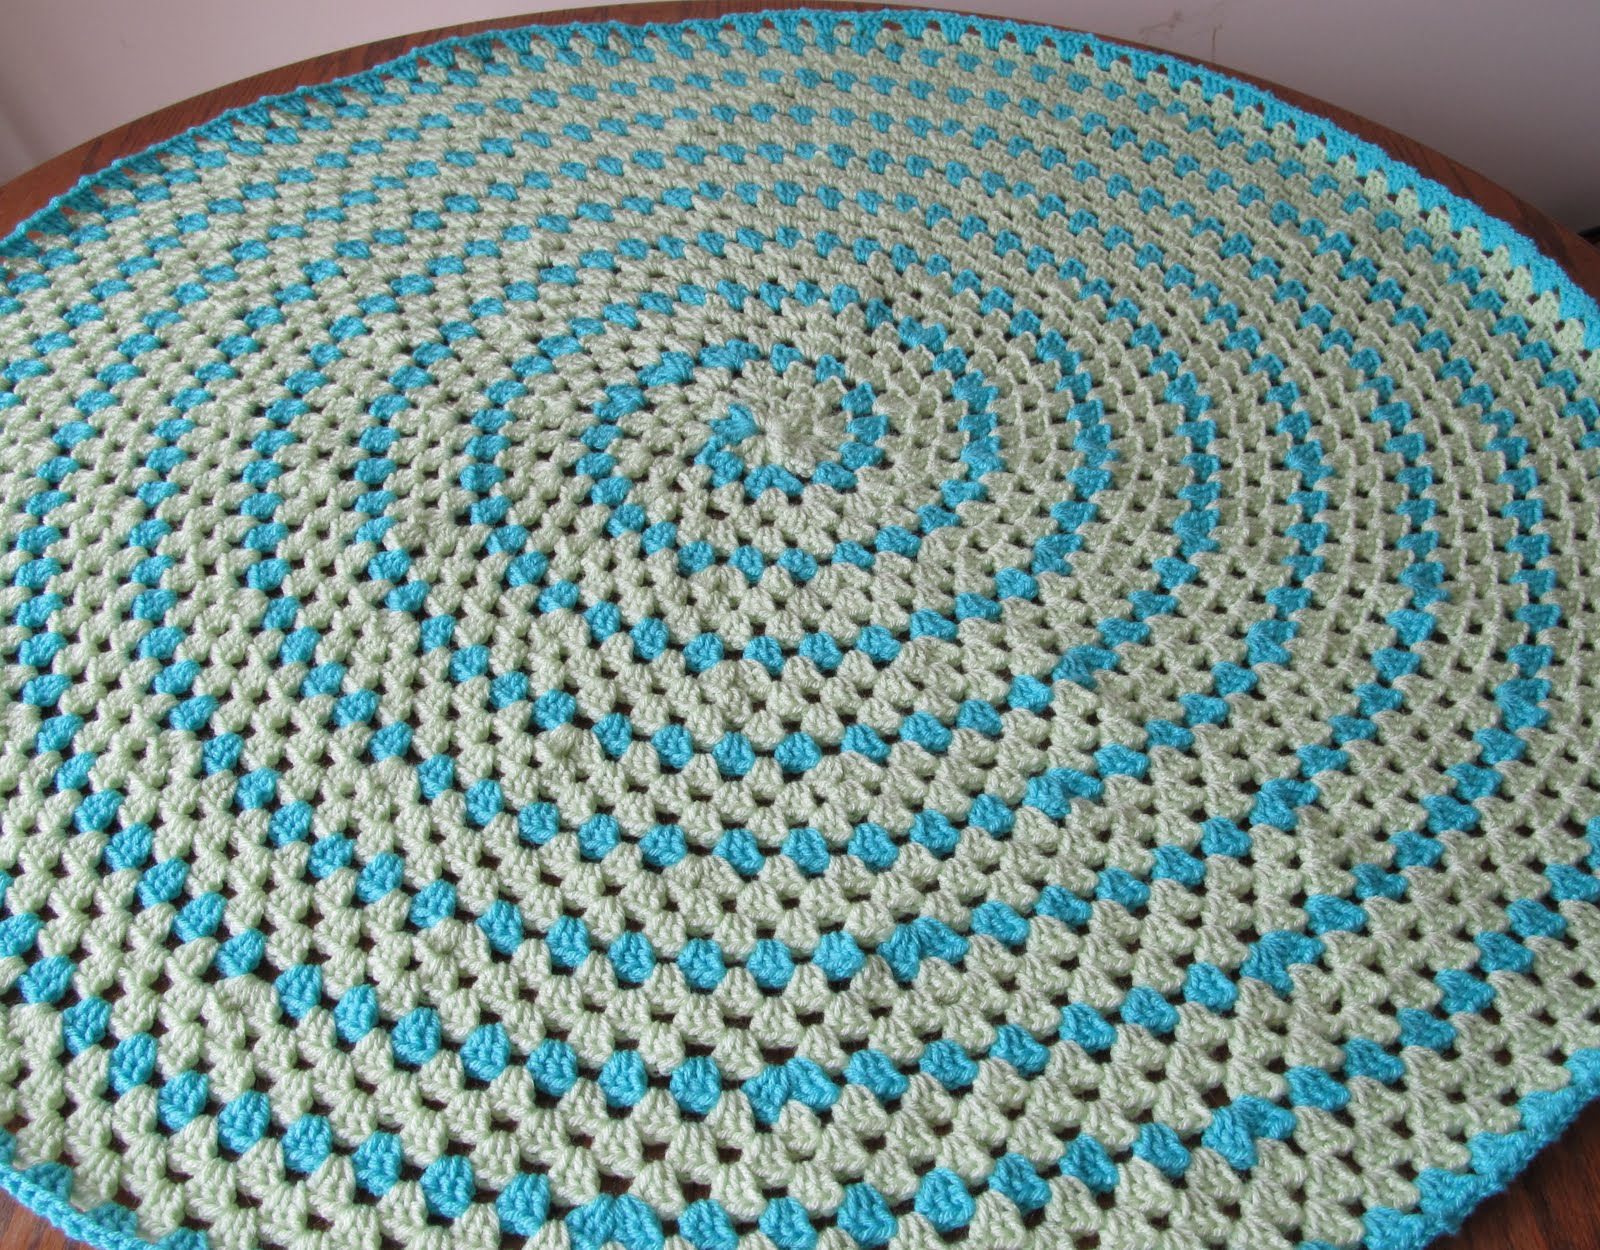 SmoothFox Crochet and Knit: SmoothFox\'s Spiral Round Granny Blanket